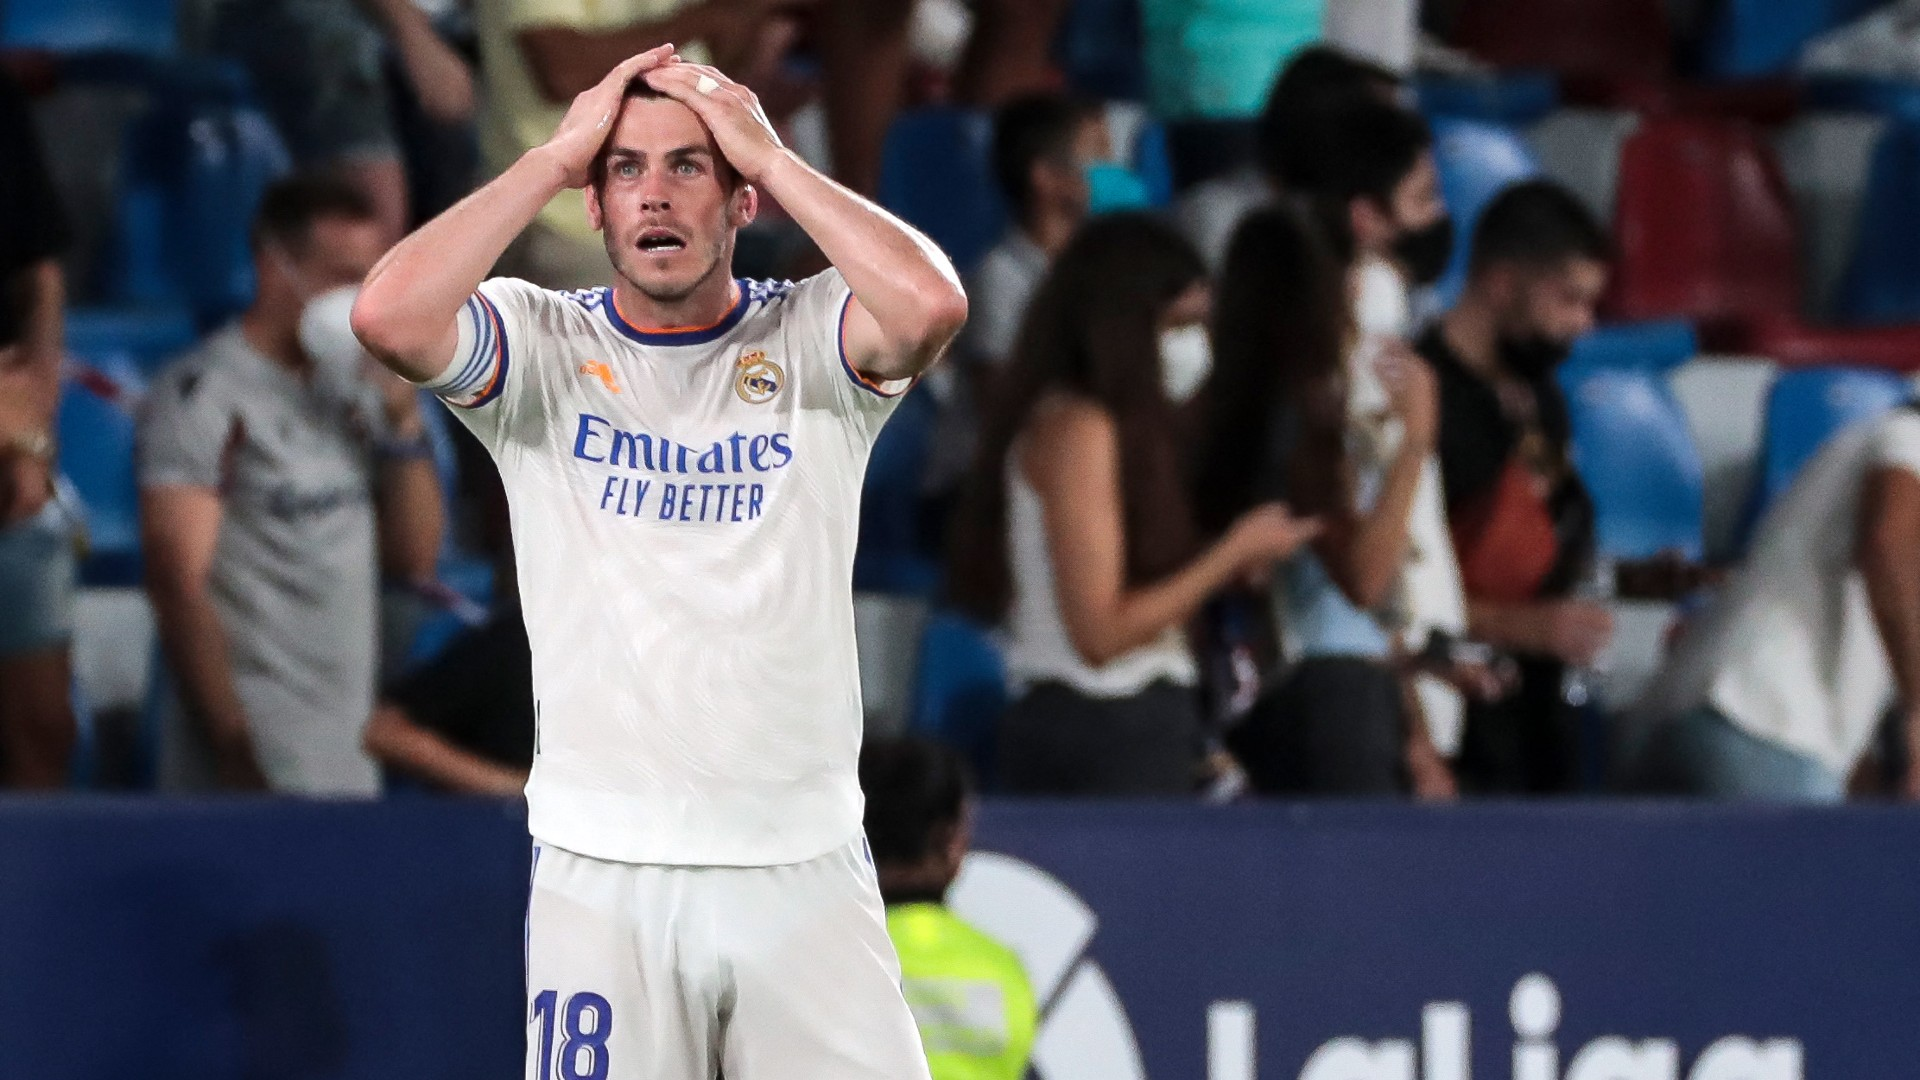 How to watch Real Madrid vs Sheriff Tiraspol in the 2021-22 Champions League from India?